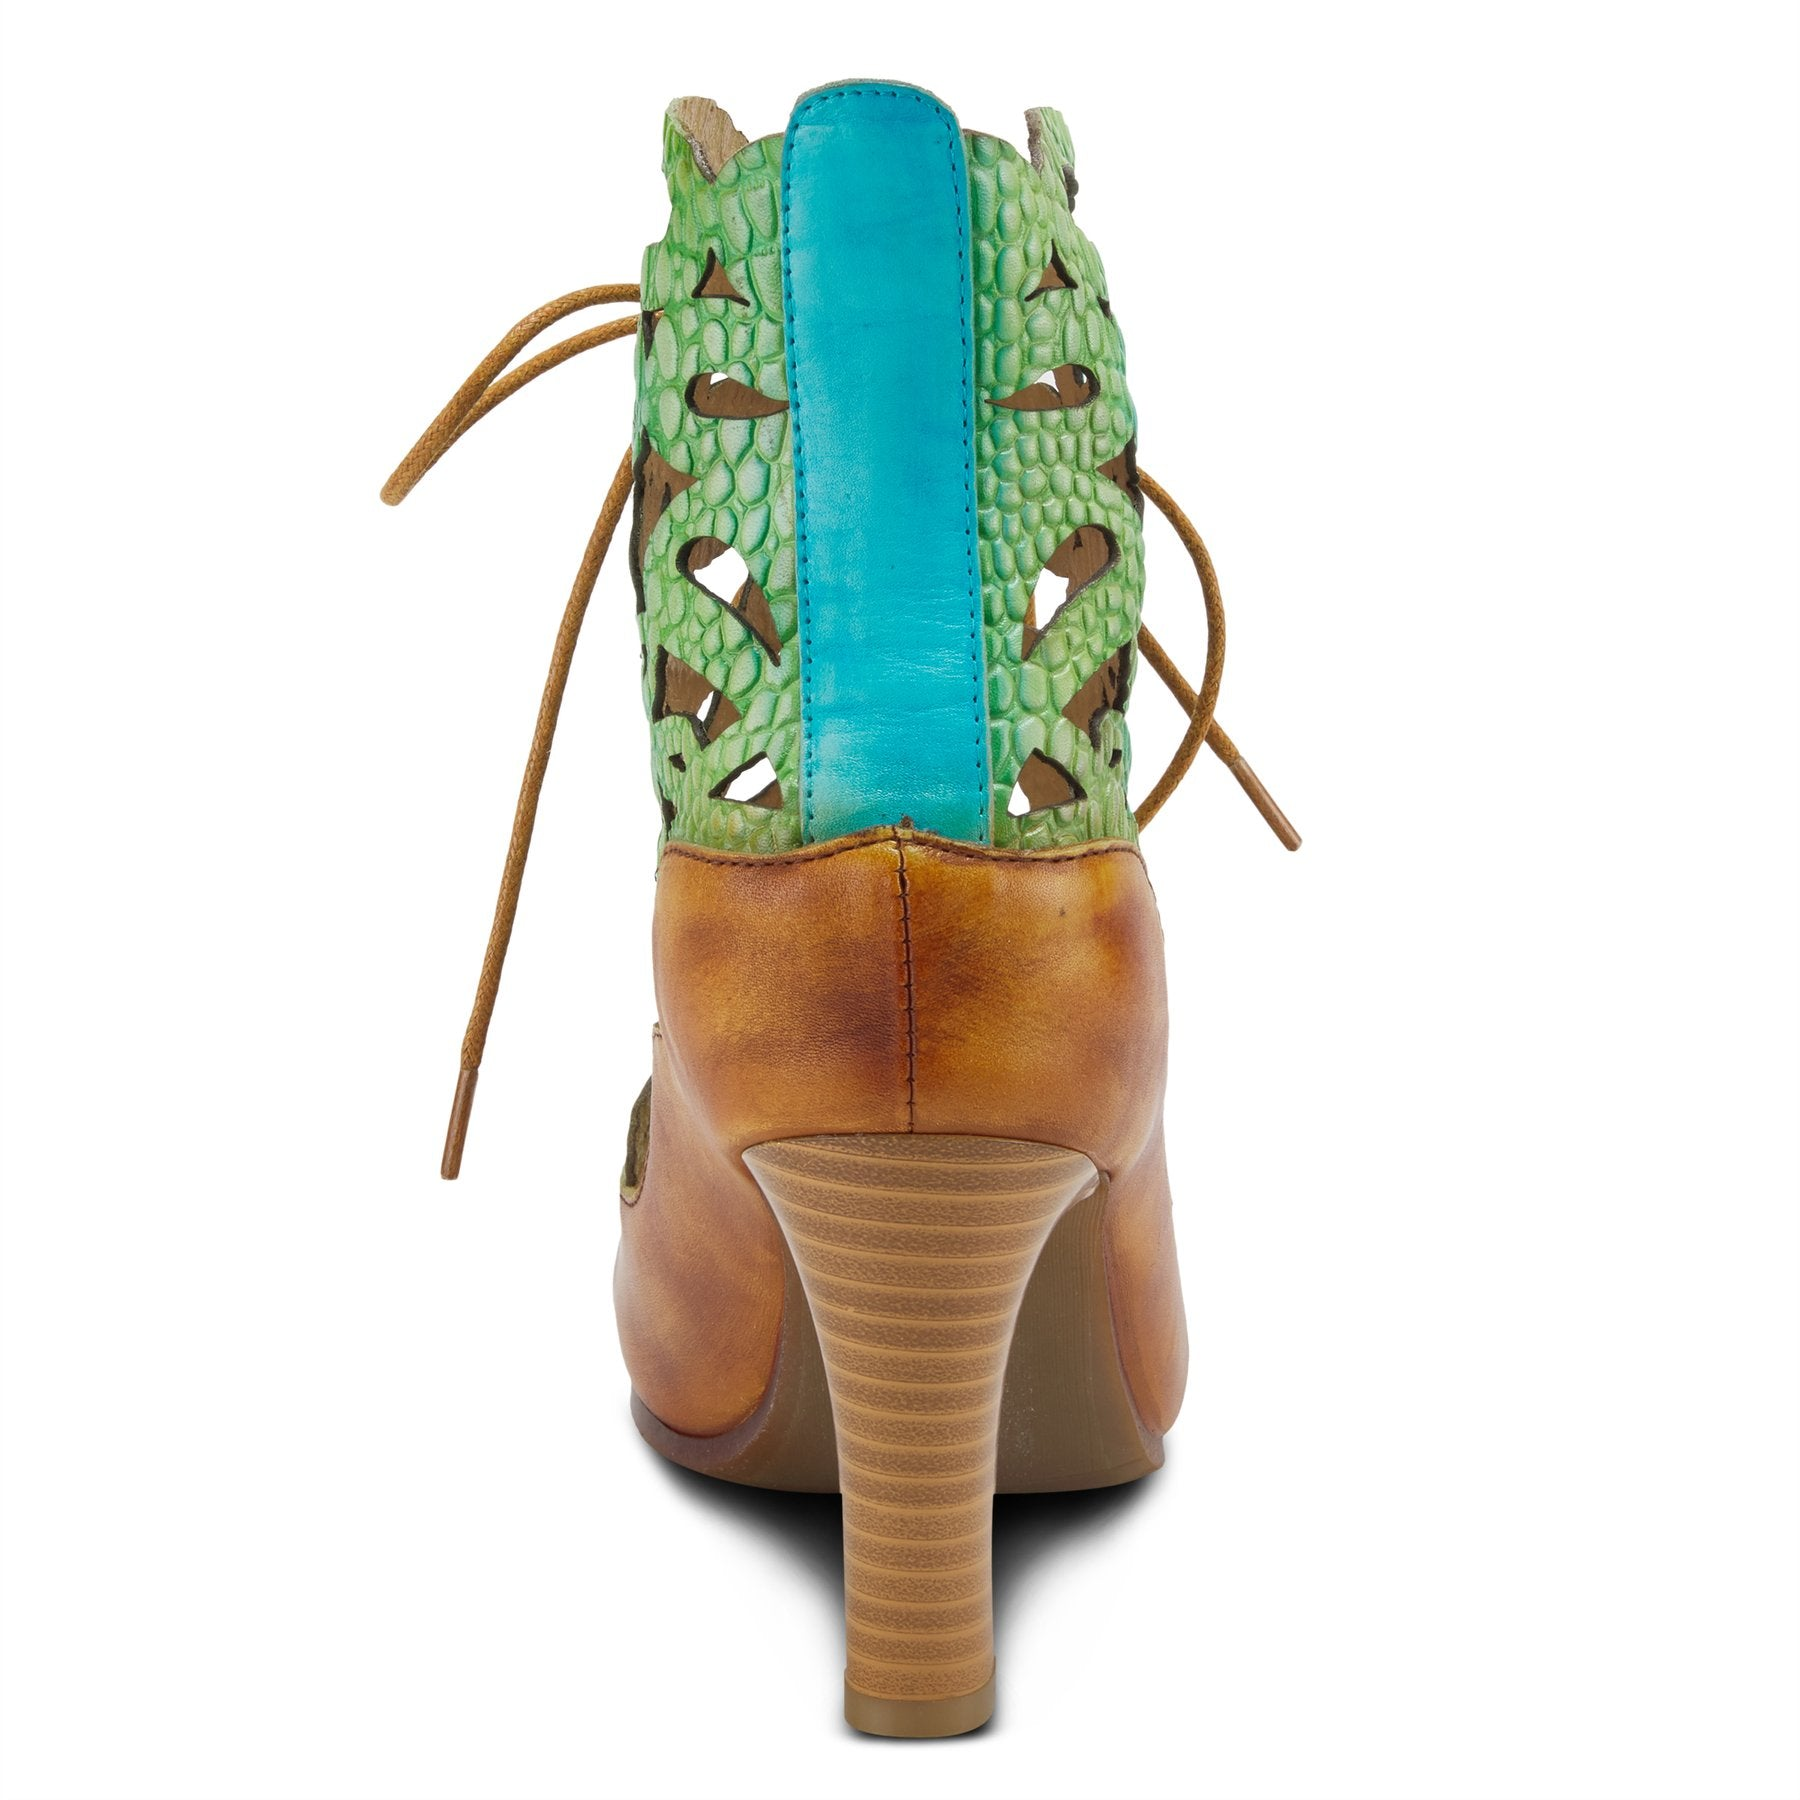 back view of the l'artiste osocool sandal. This sandal is an open toe high heel with green and blue floral cutouts through out the upper. The upper goes up to the ankle and has a lace up closure. The sandal also features tan edging and a blue strip on the closed back.